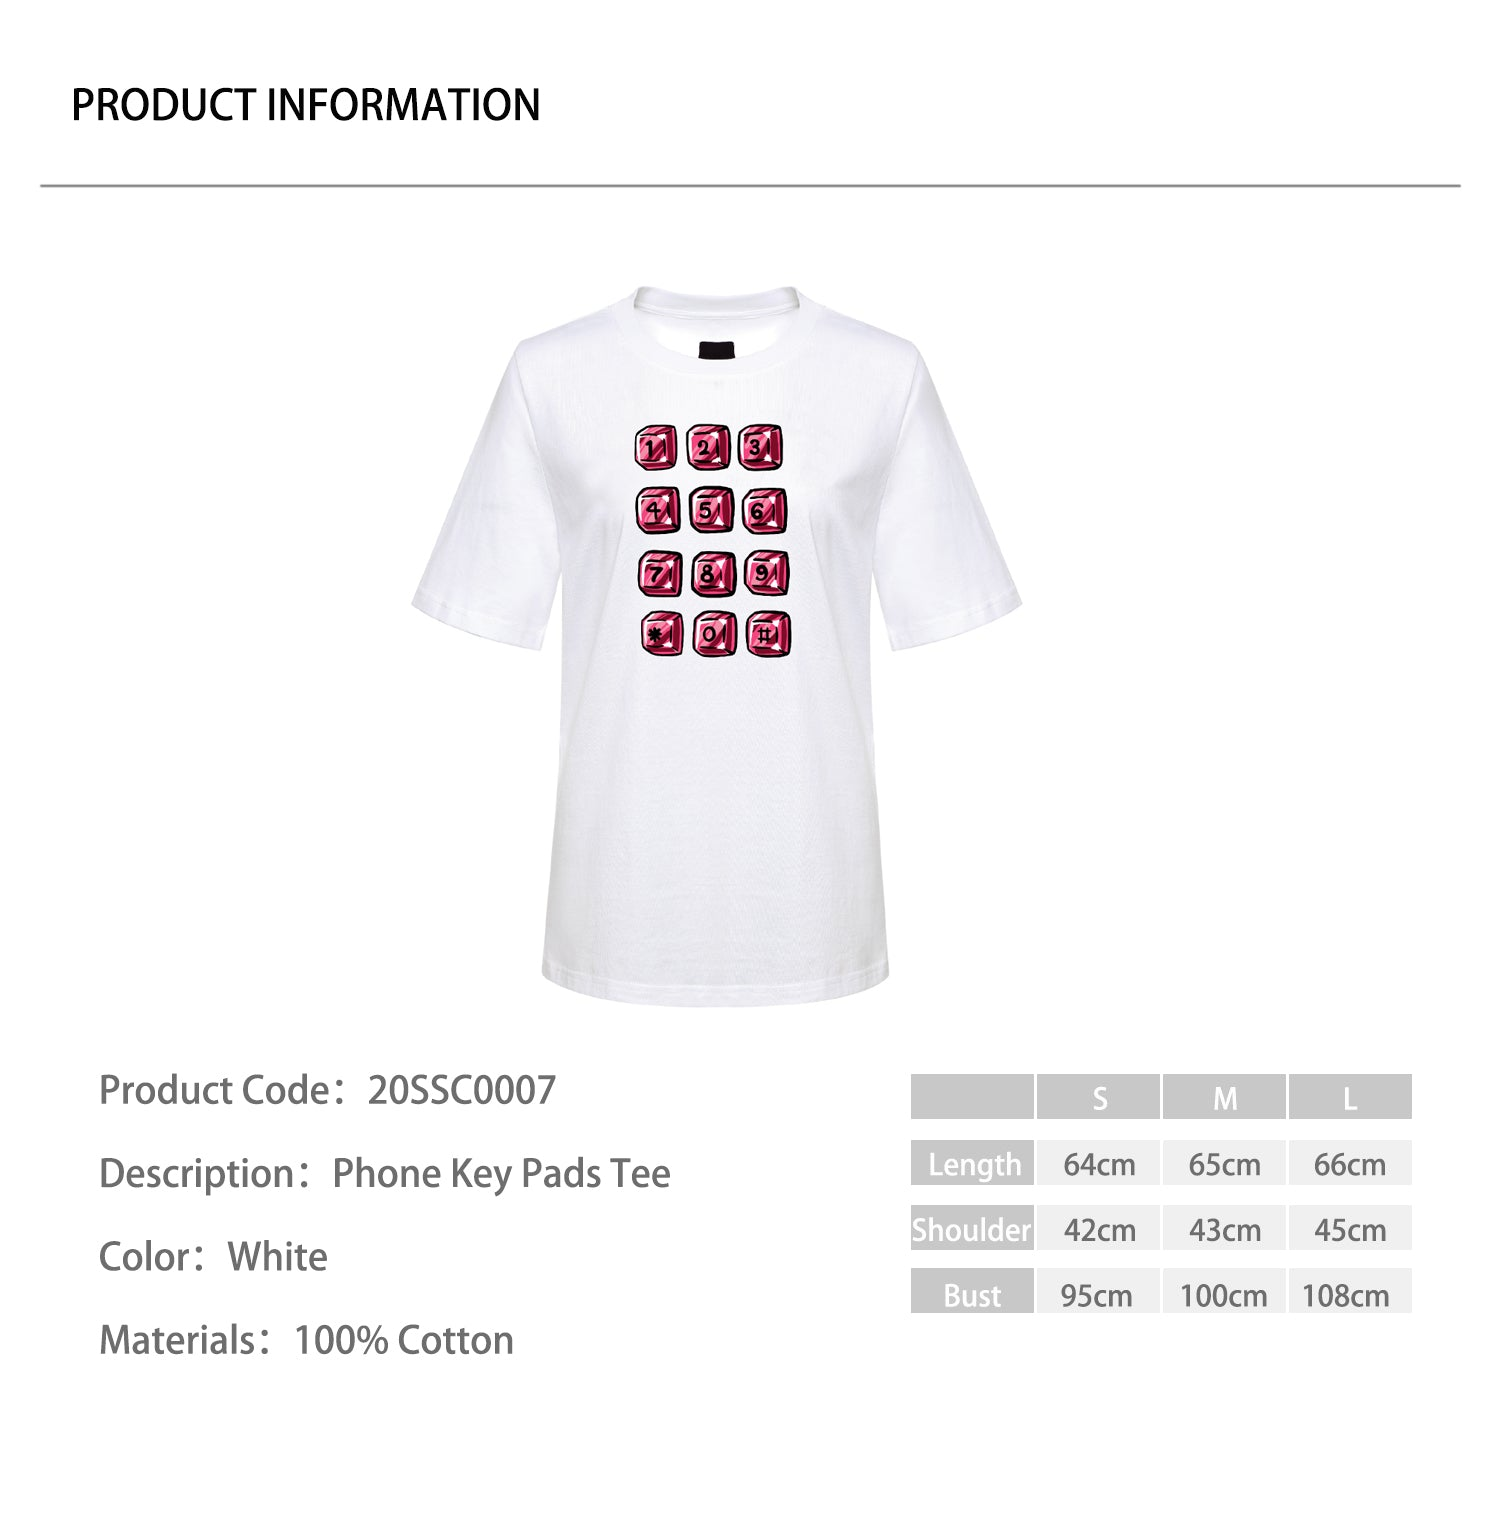 Phone Key Pads Tee